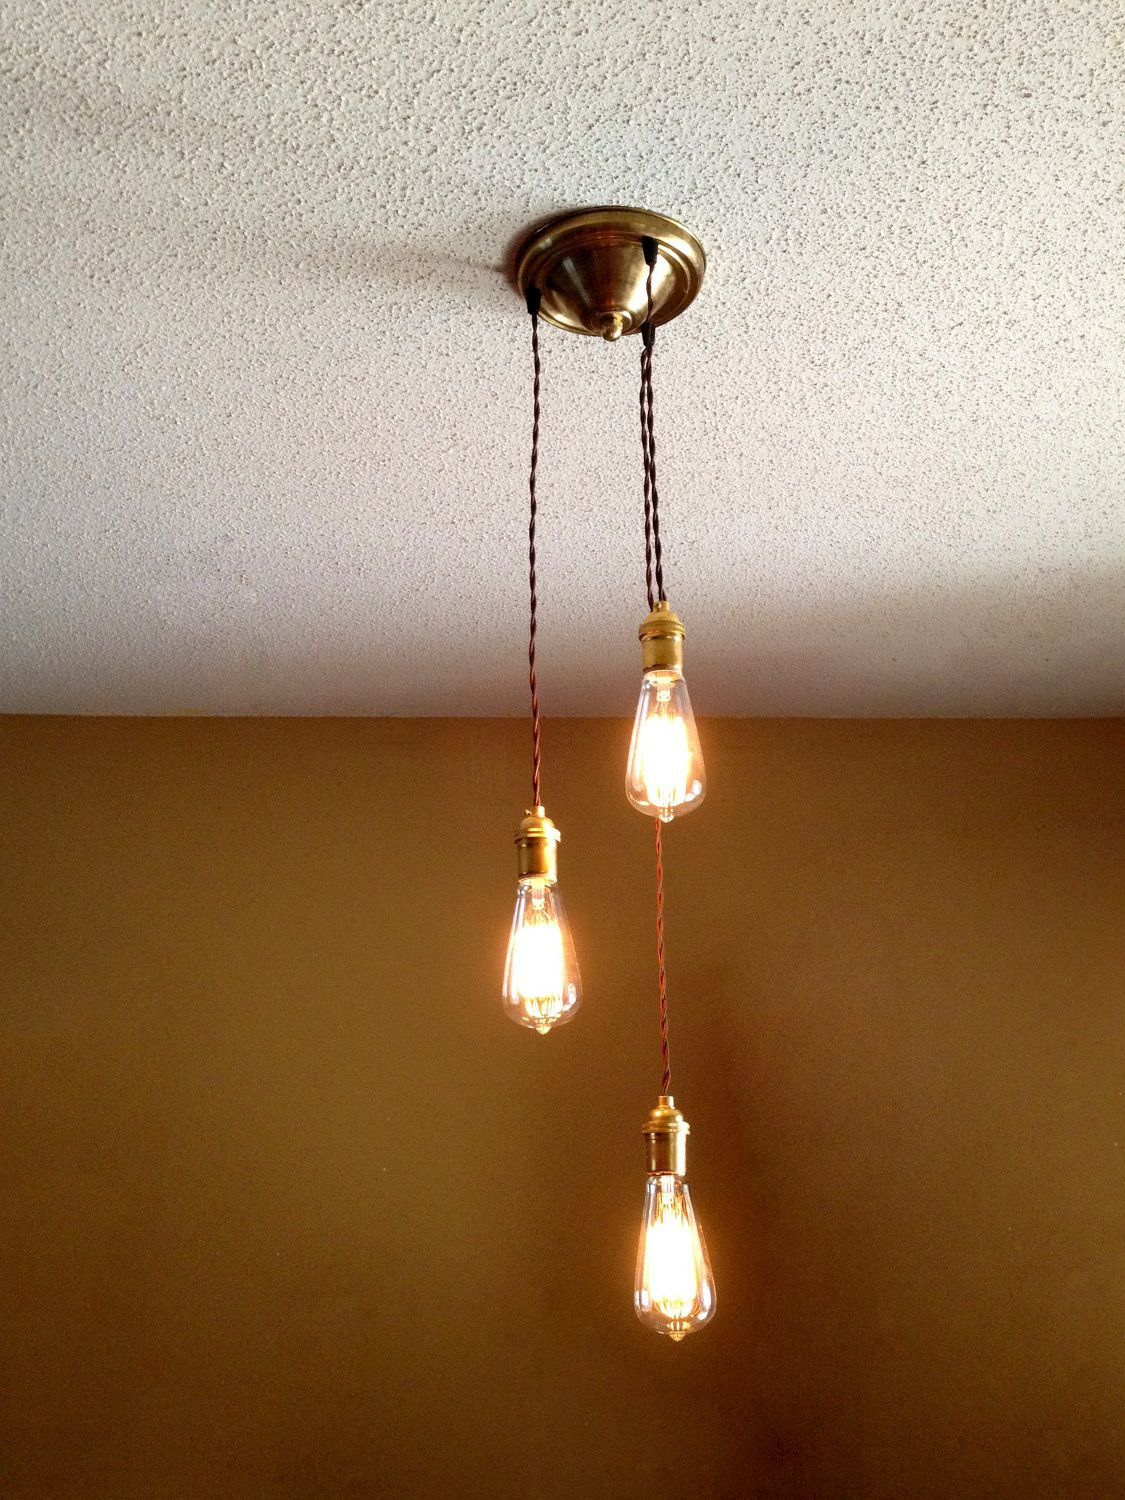 Hanging Bare Bulb Pendant Light 3 Bulb Cascading Chandelier